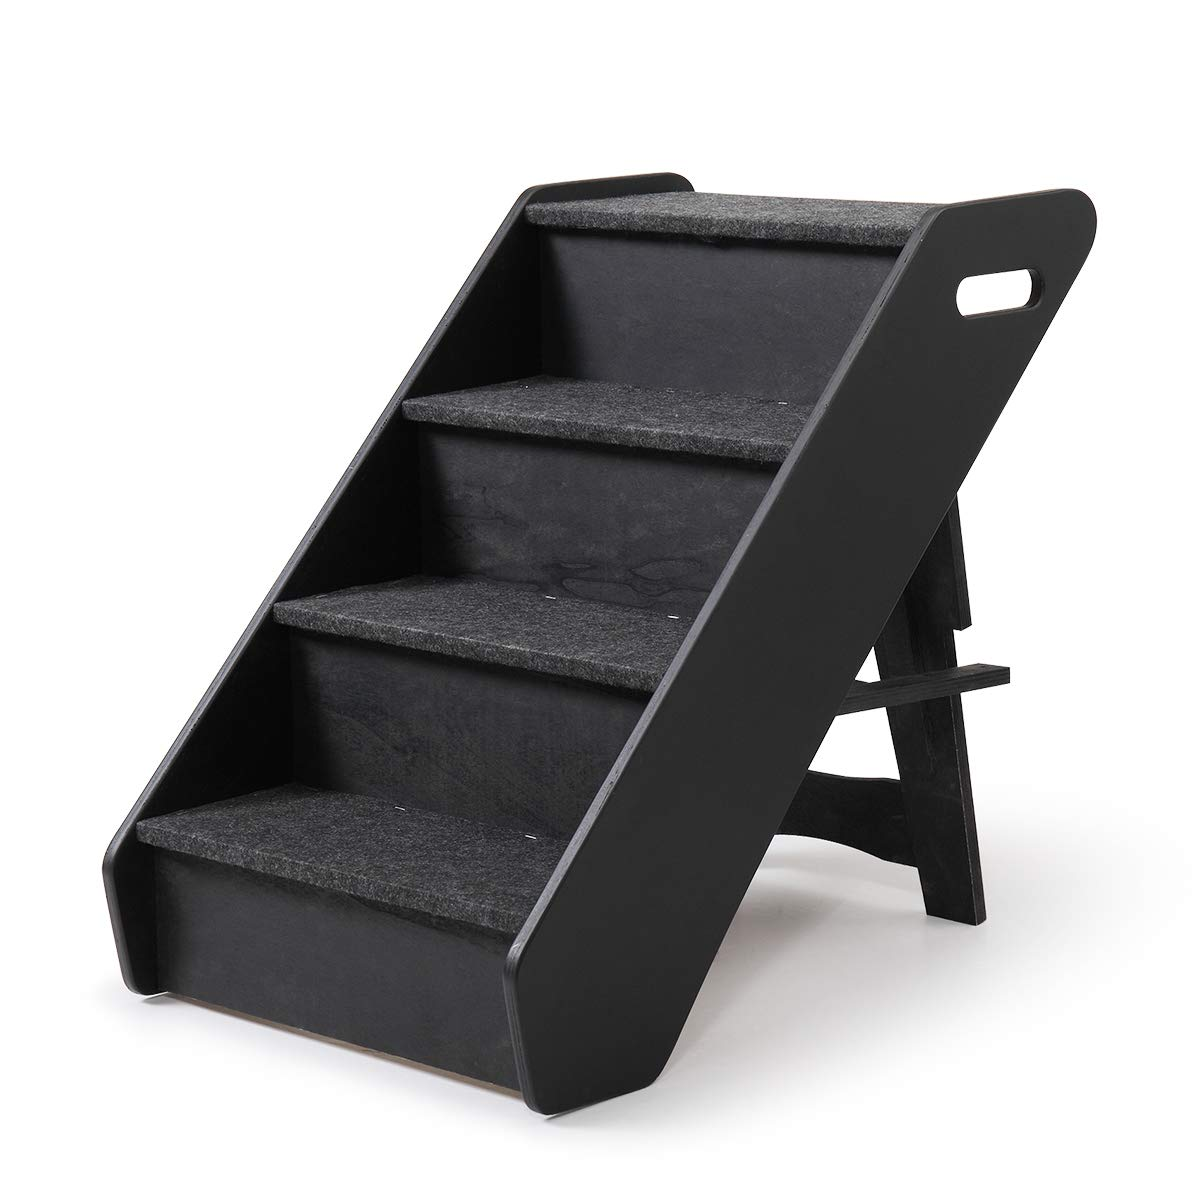 Sandinrayli Dog Steps 4 Steps for High Bed Pet Stairs Small Dogs Cats Ramp Ladder by Sandinrayli